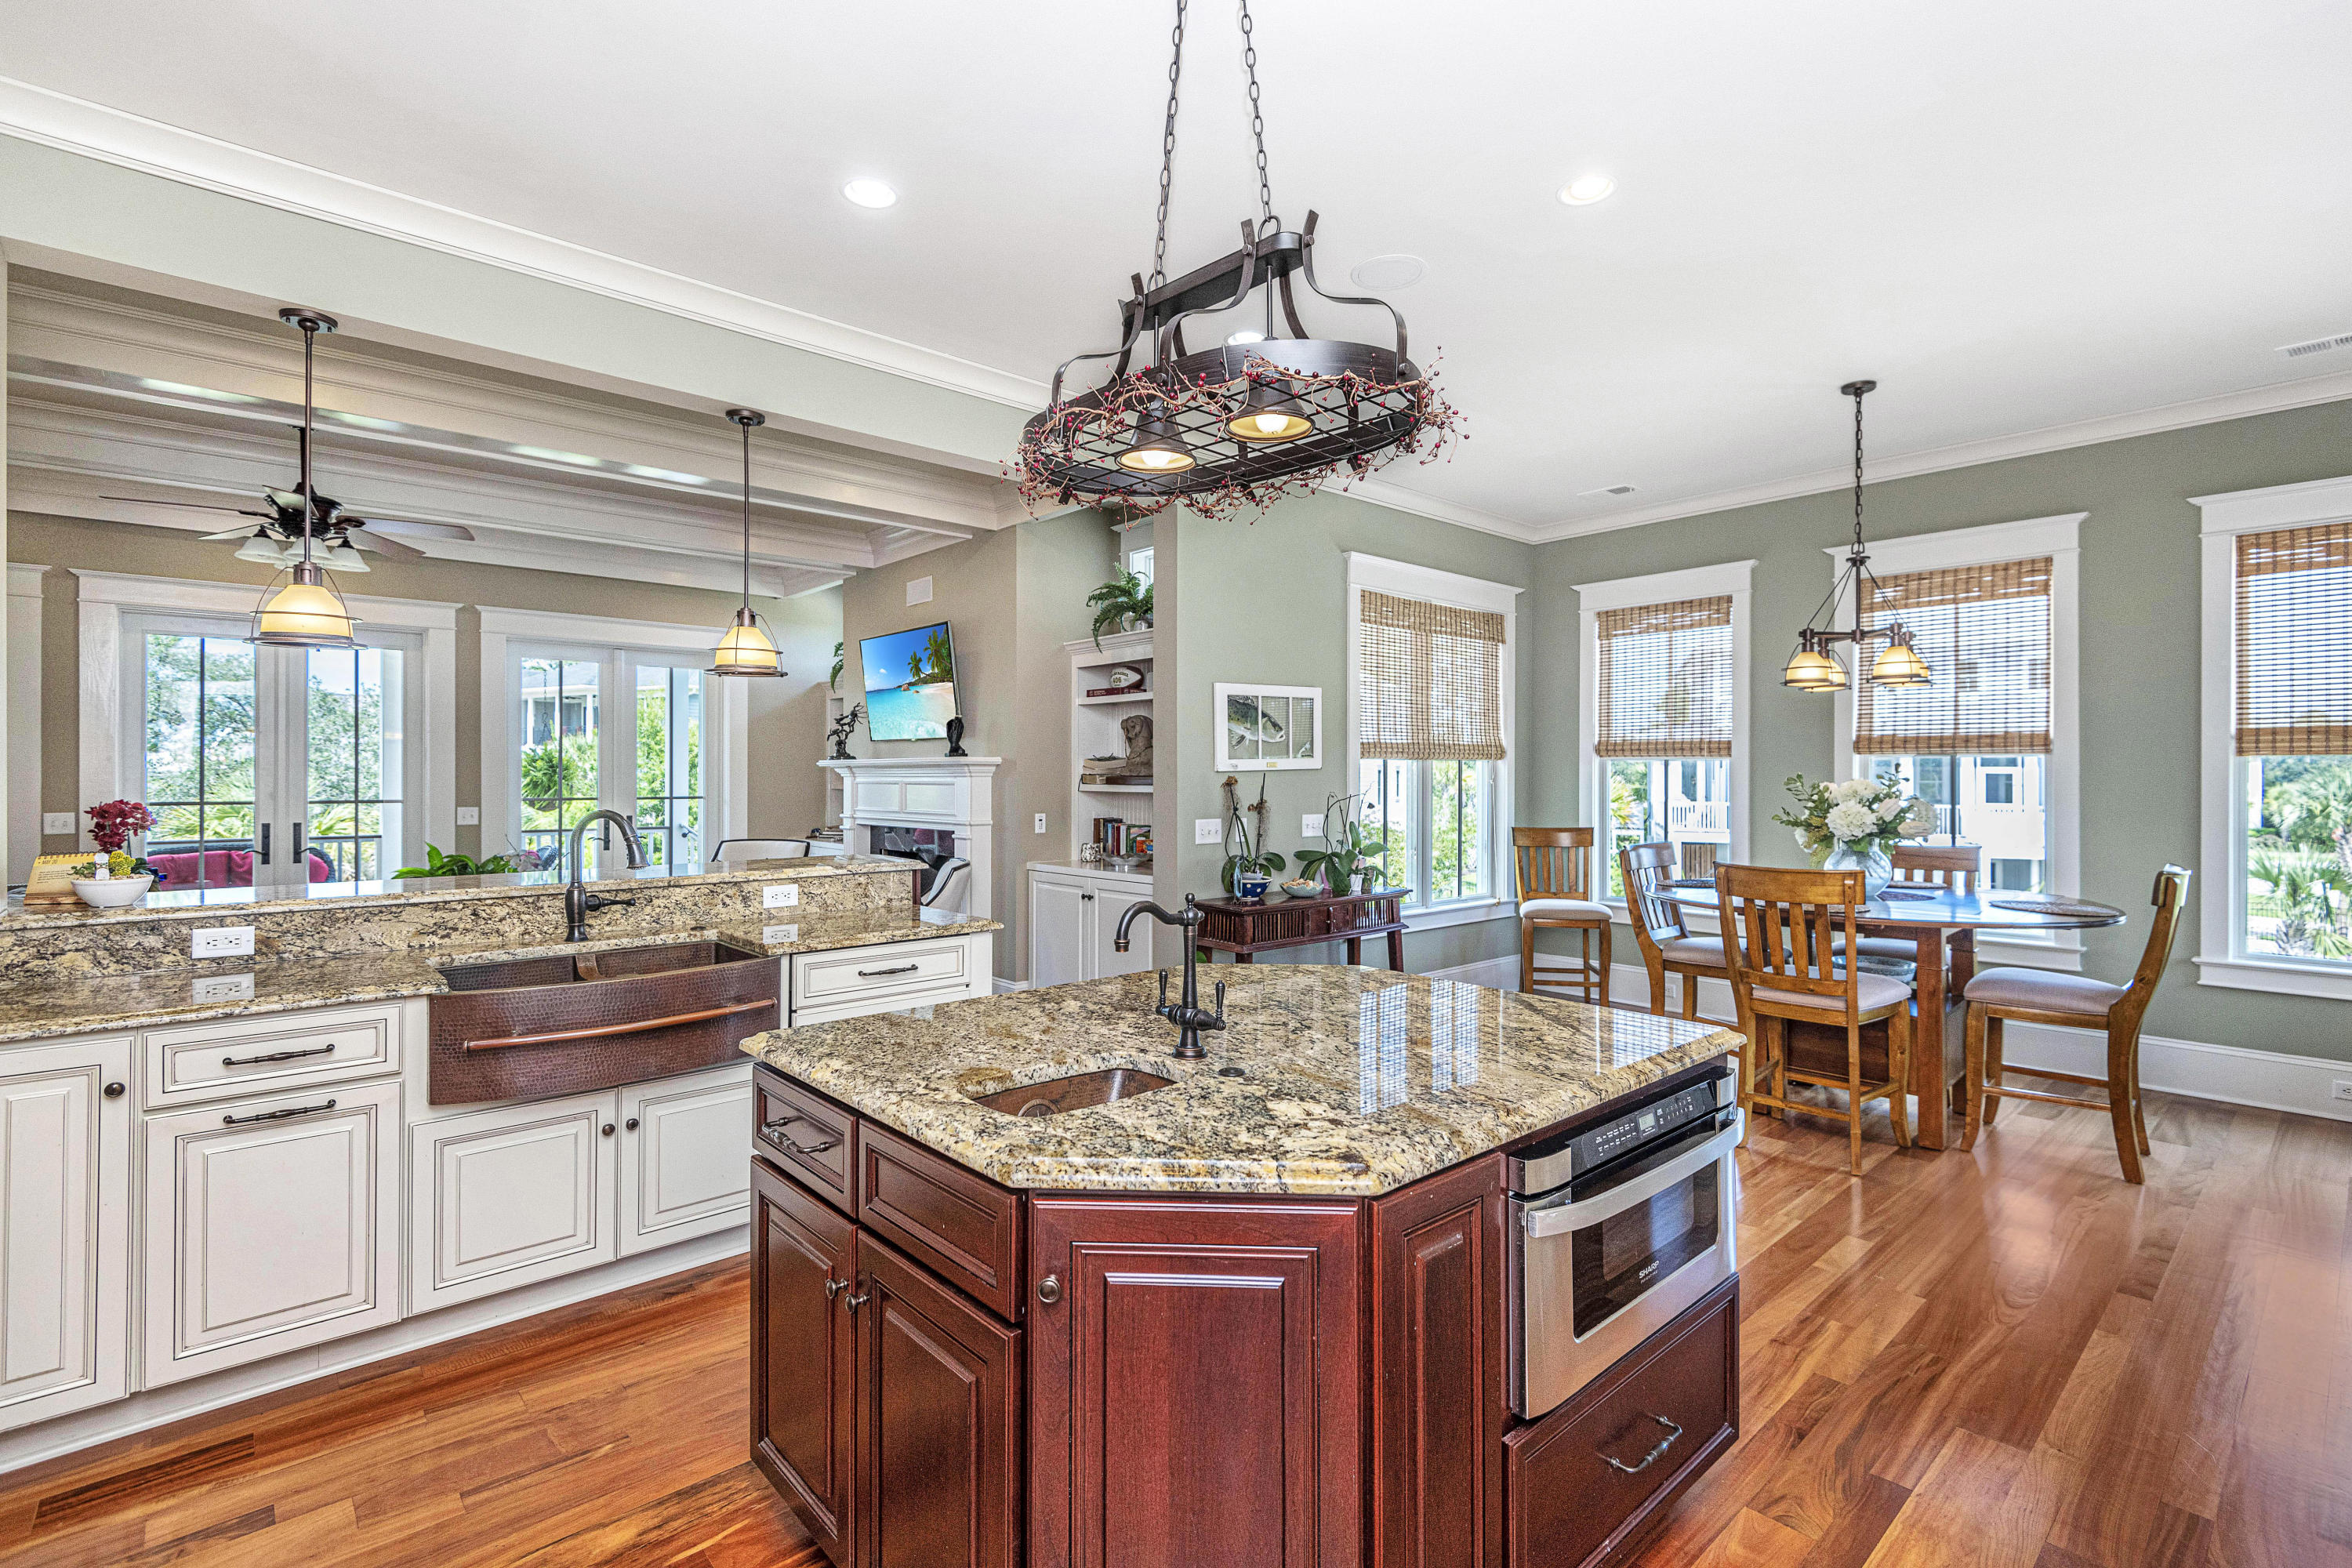 Dunes West Homes For Sale - 2836 Stay Sail, Mount Pleasant, SC - 36